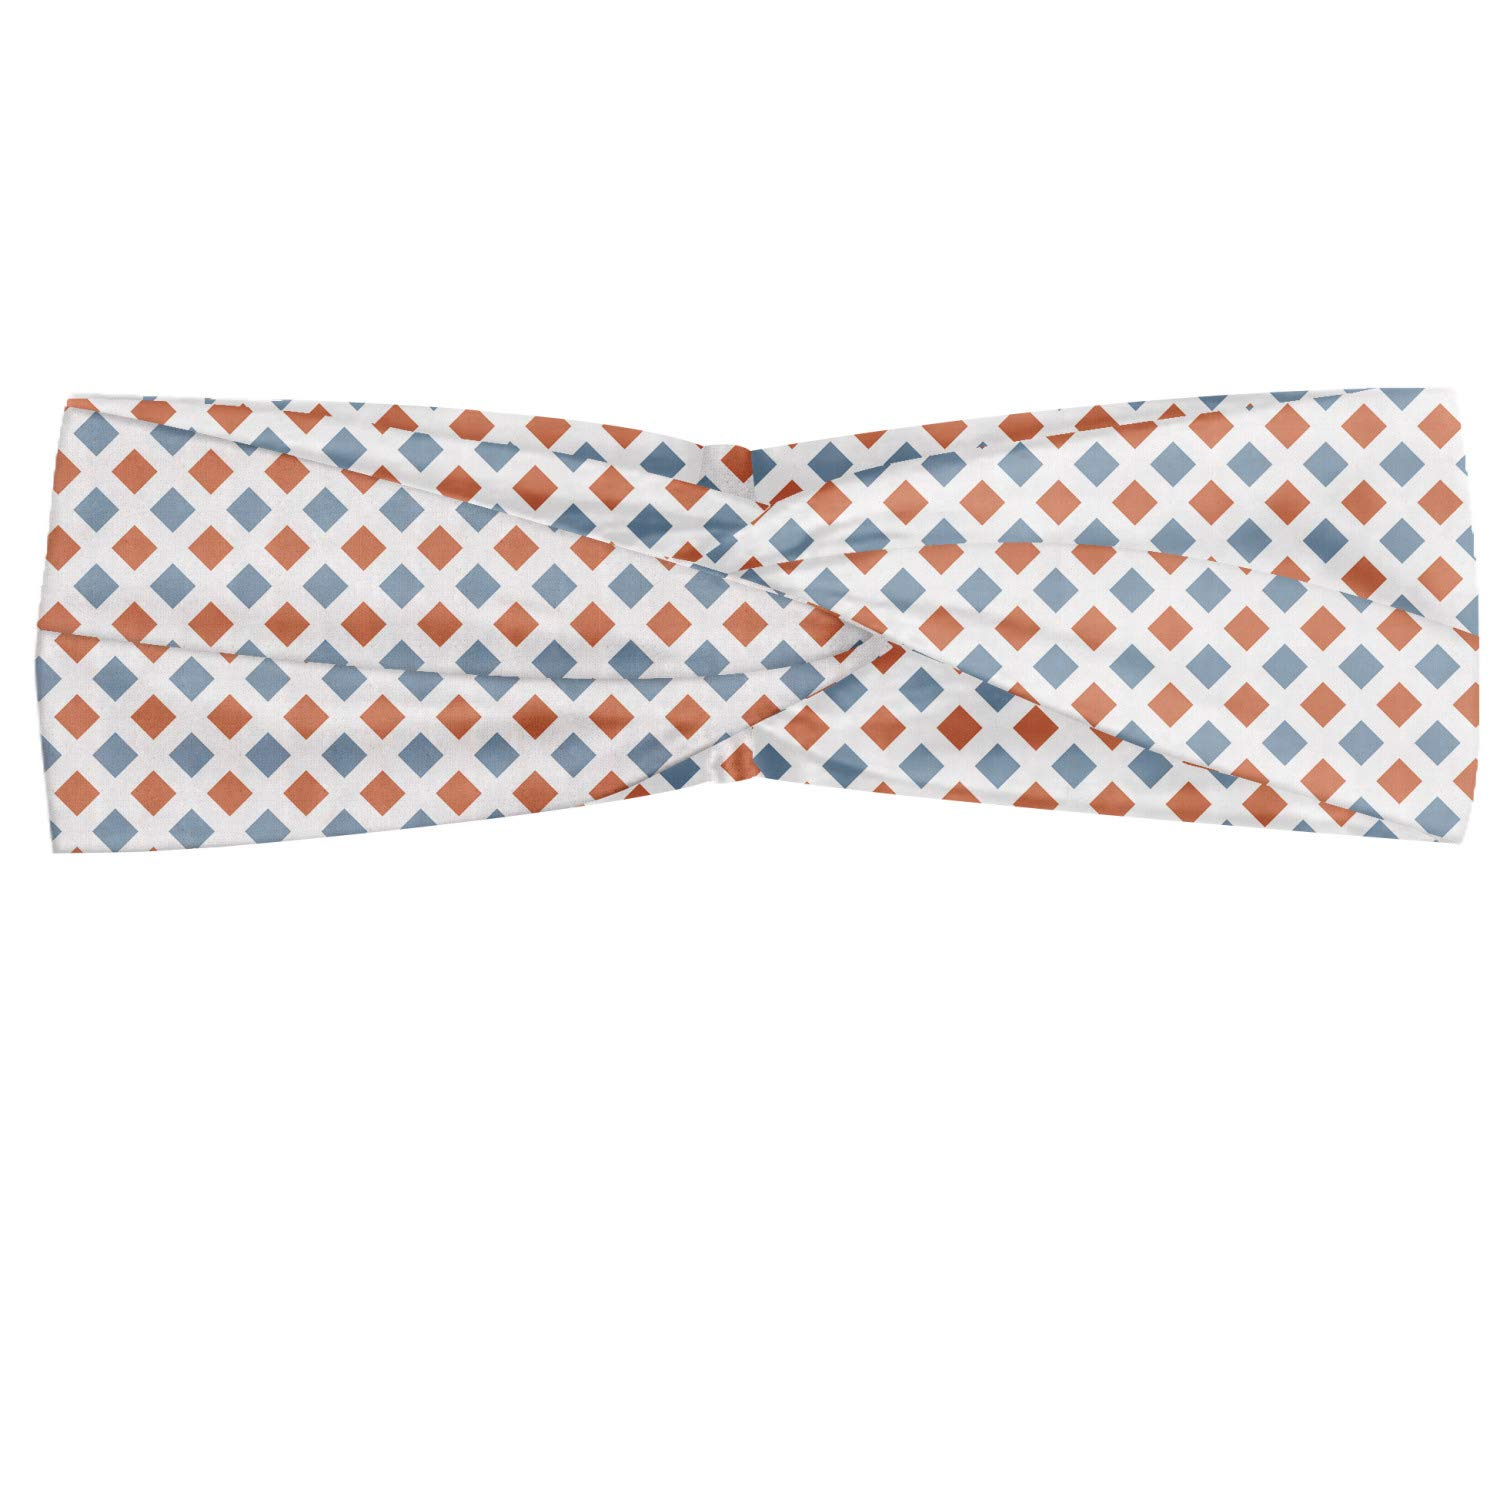 Ambesonne Modern Headband, Geometrical Image with Colorful Rhombus and Bold Borders Image Print, Elastic and Soft Women's Bandana for Sports and Everyday Use, White Seafoam and Coral